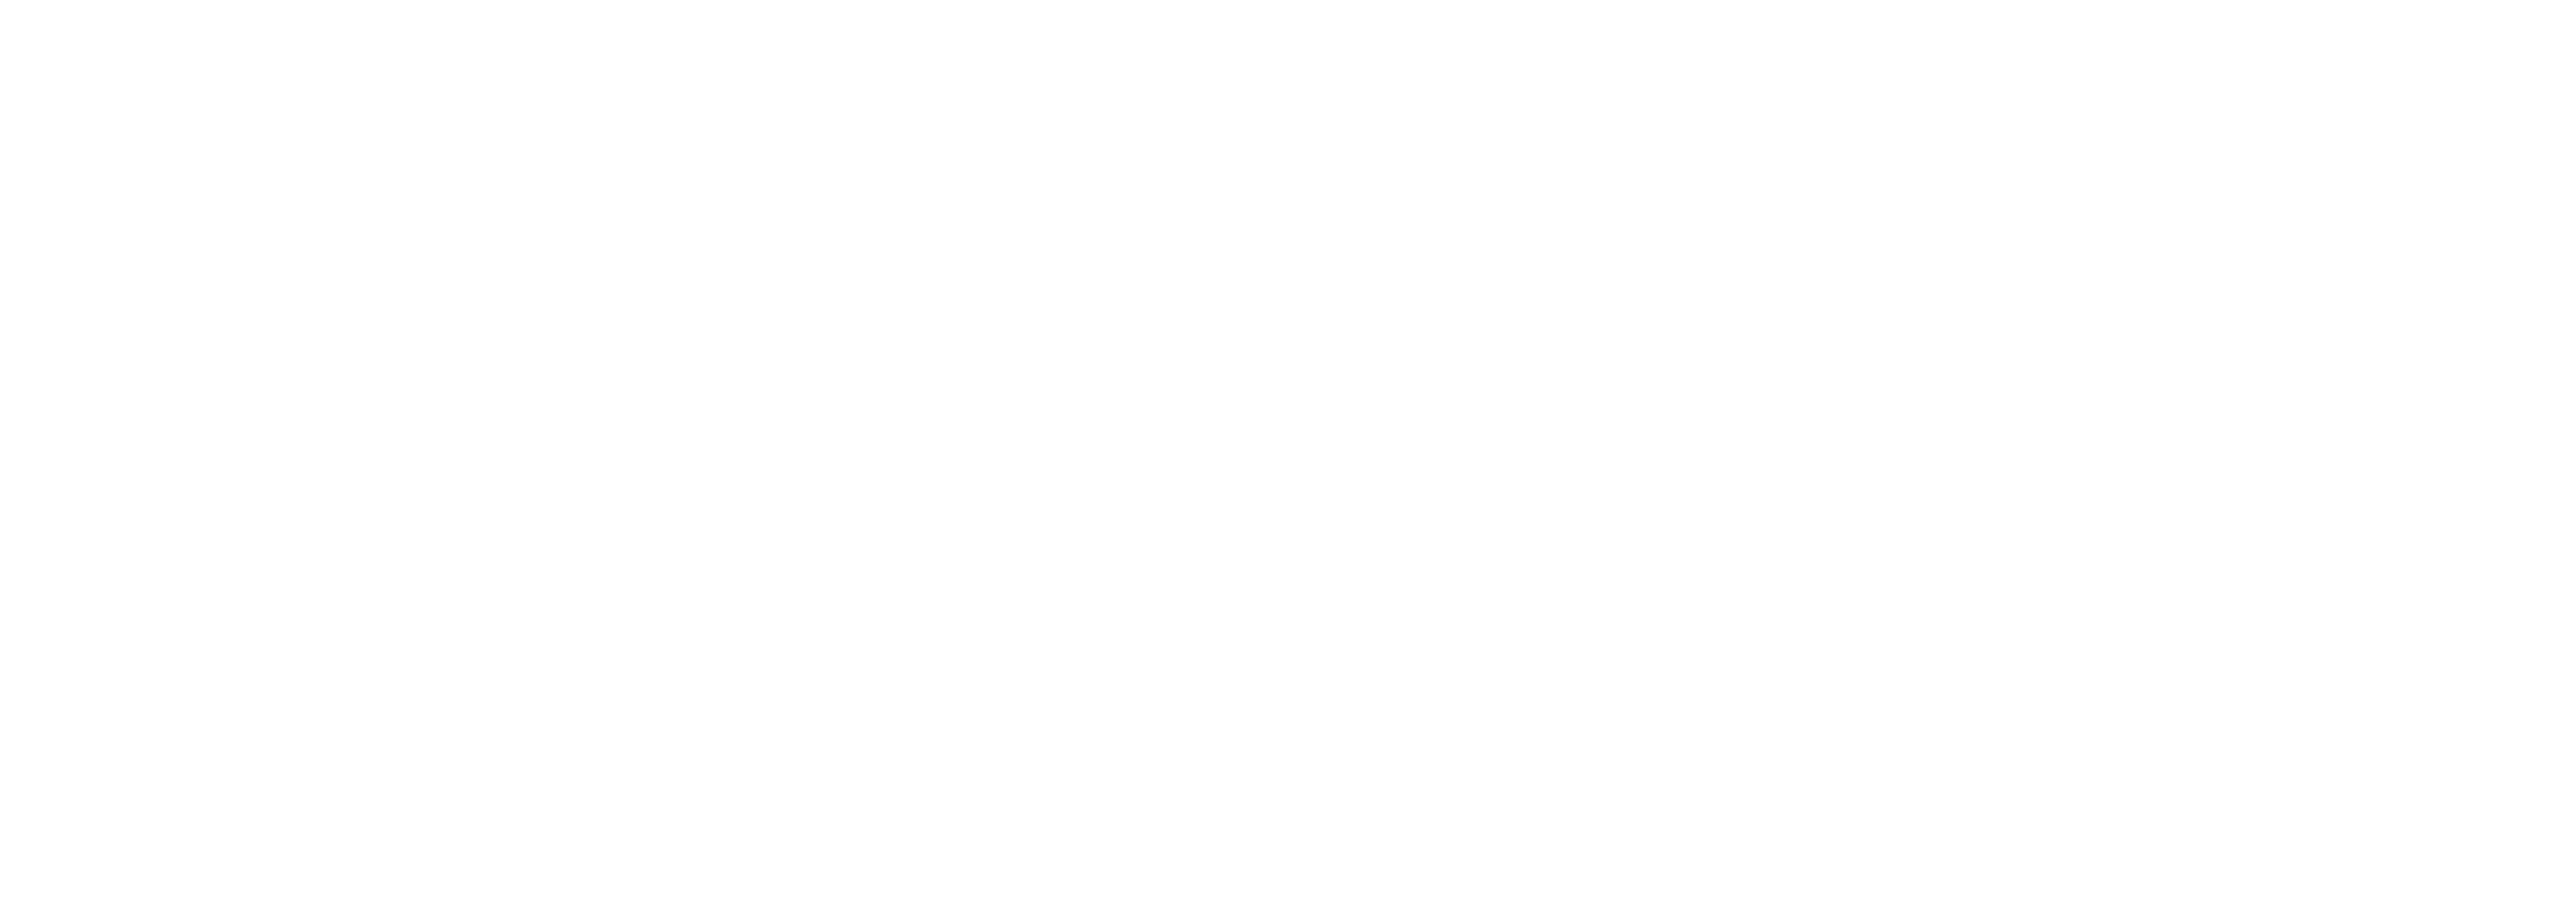 design-and-marketing-lachlans-square-village-your-local-blend-at-the-village-tagline